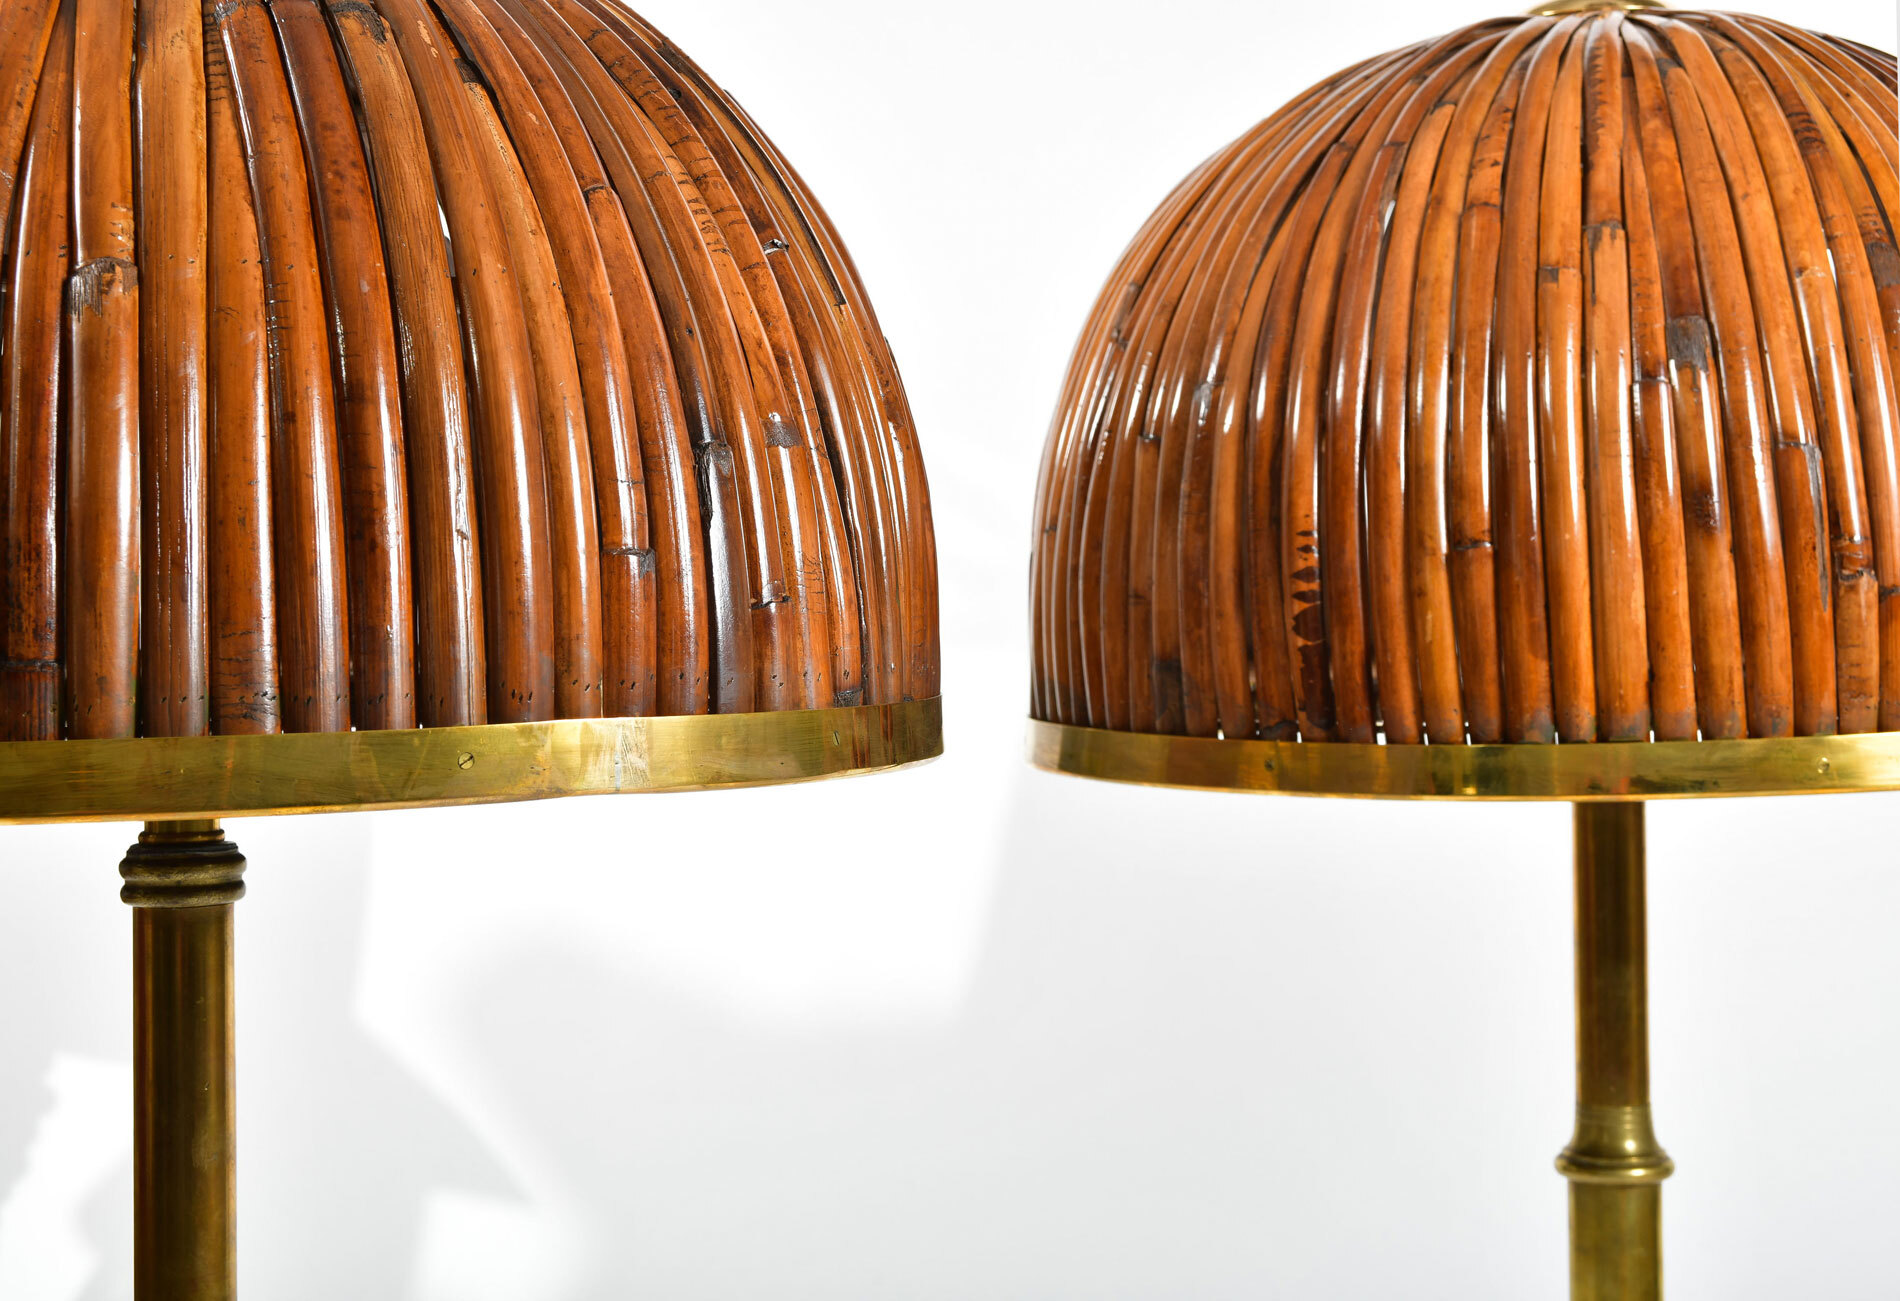 Table lamp, Brass table lamps